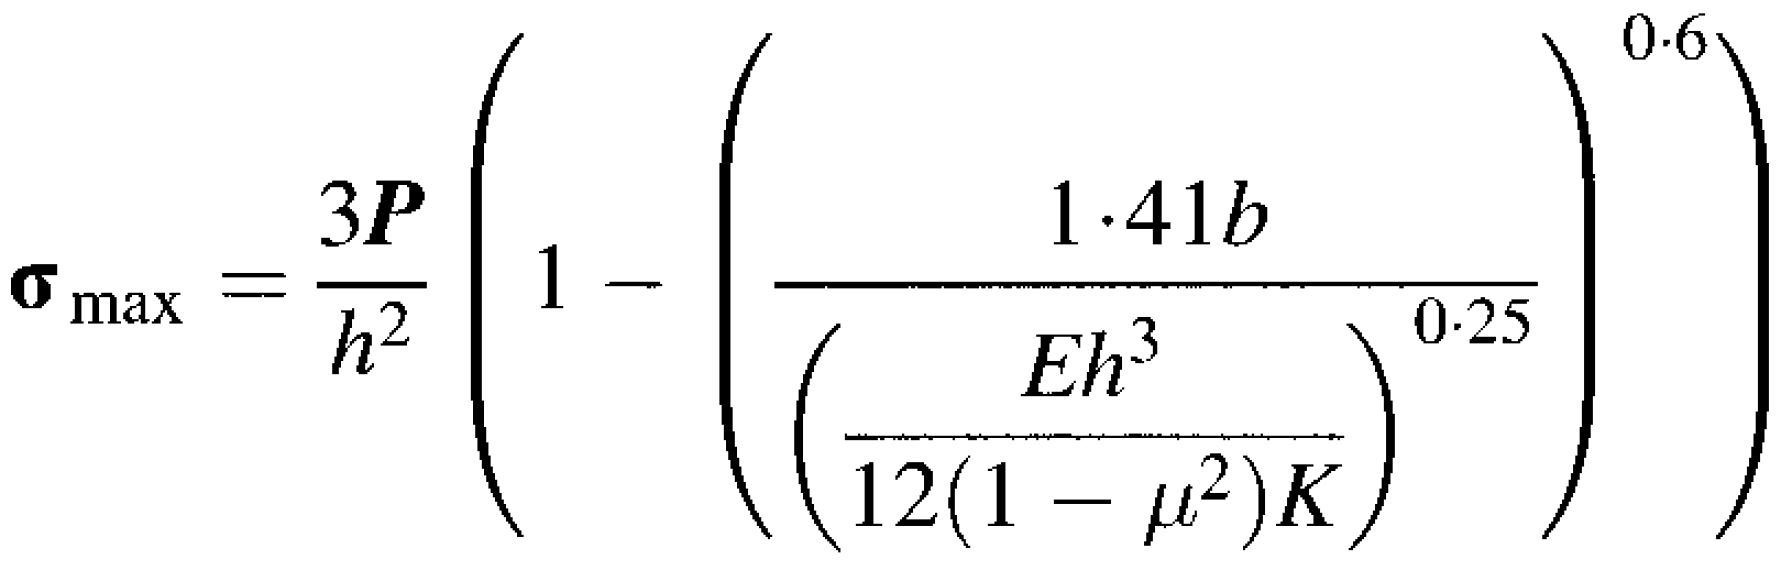 Westergaard - Corner Load Equation (Westergaard)